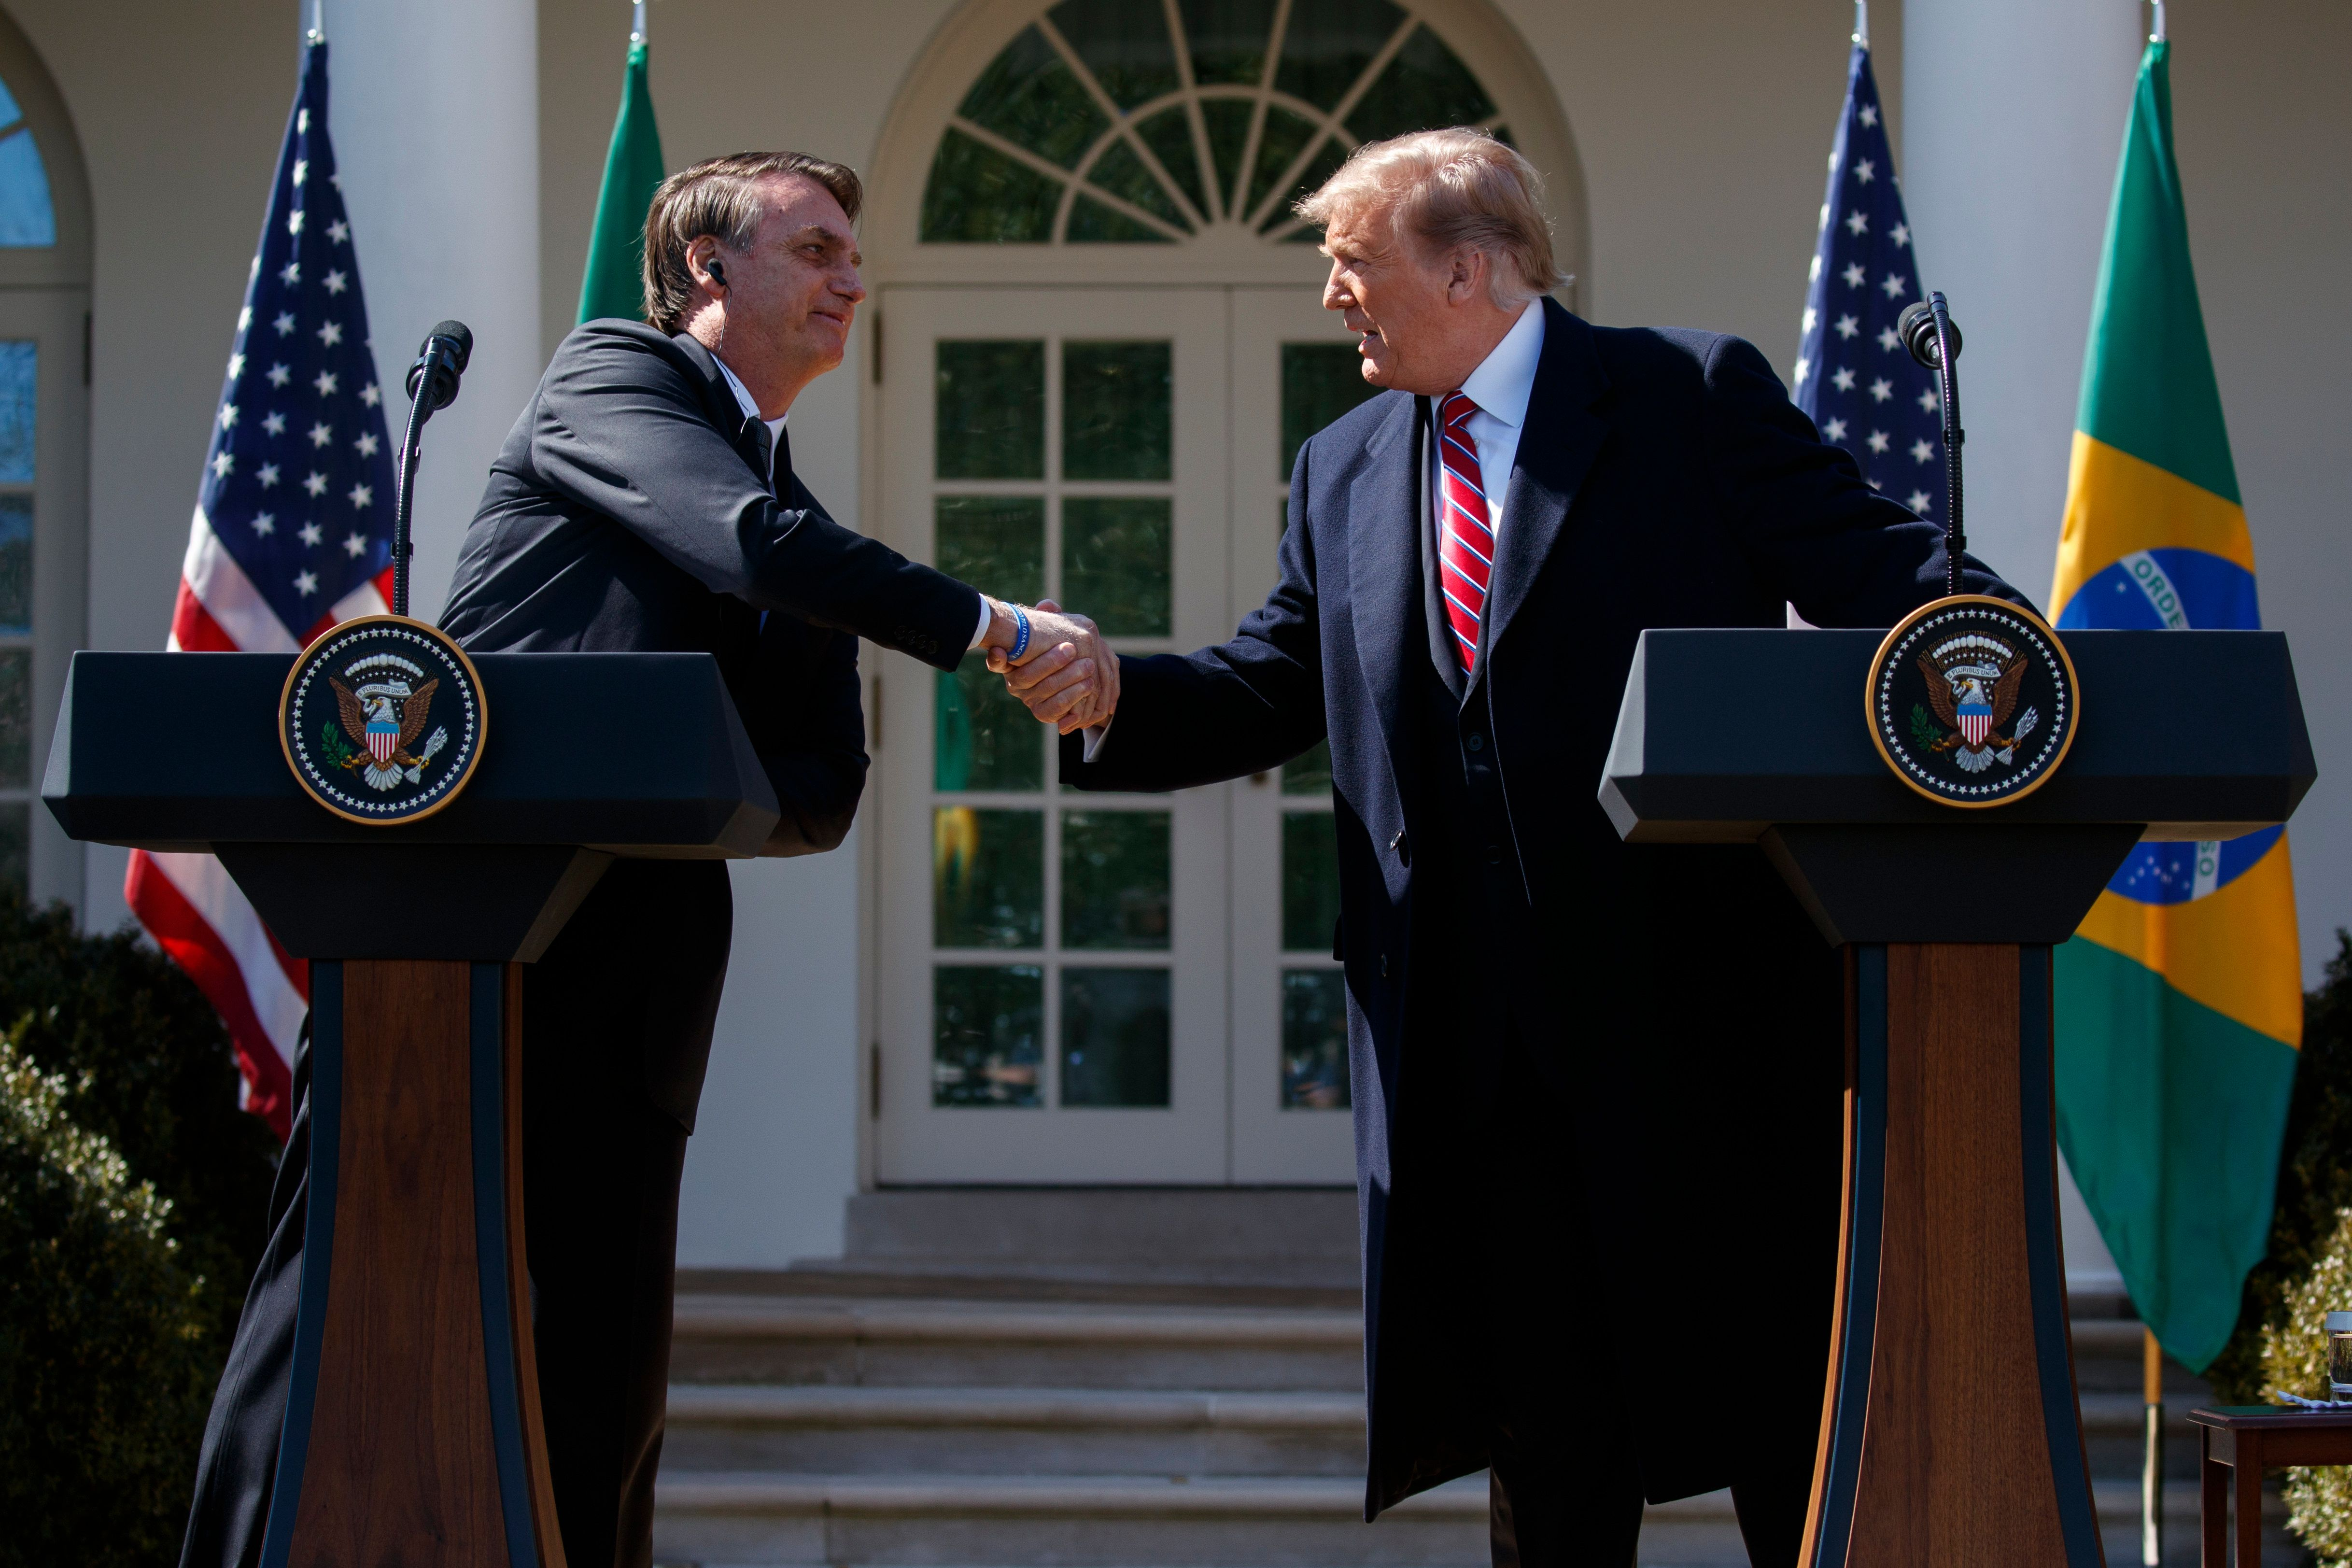 President Donald Trump and Brazilian President Jair Bolsonaro shake hands during a news conference in the Rose Garden of the White House, Tuesday, March 19, 2019, in Washington. (AP Photo/Evan Vucci)